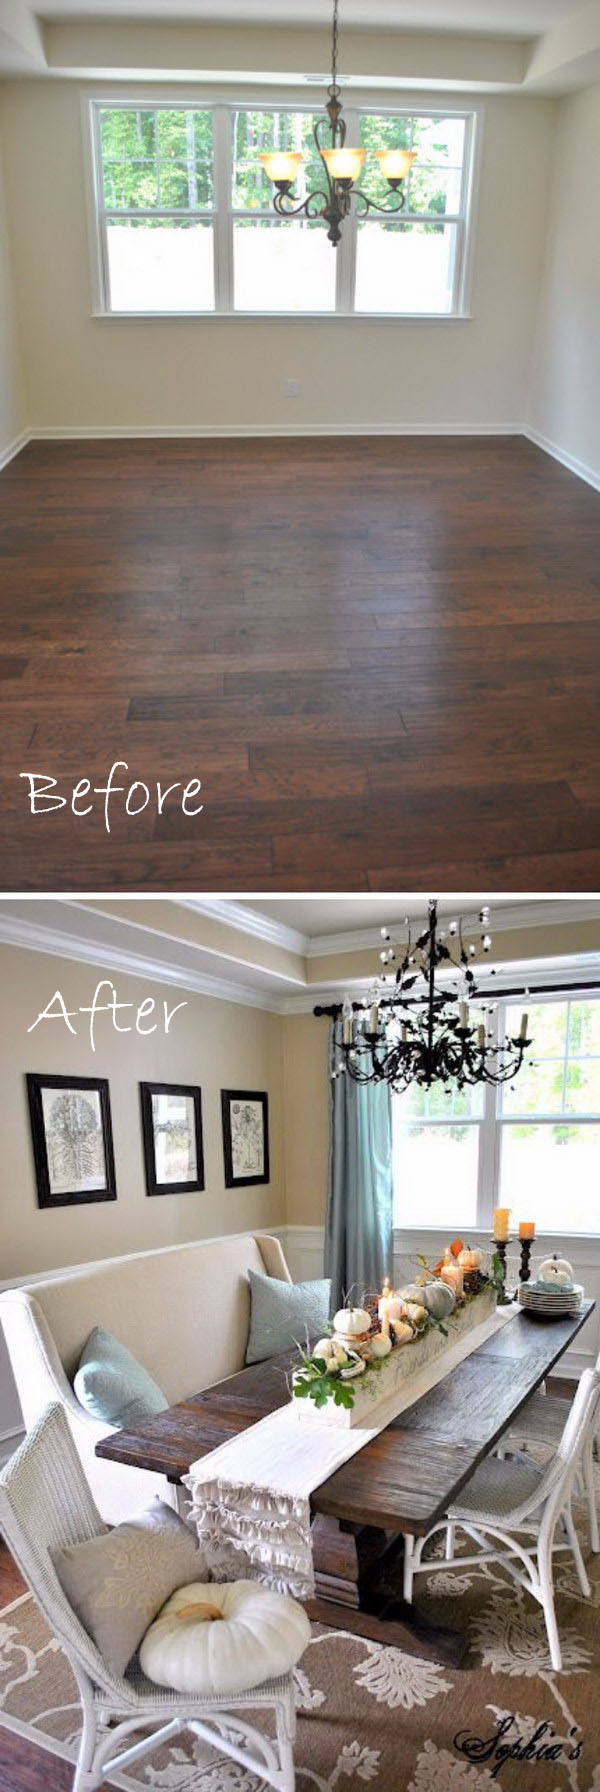 17-18-dining-room-makeover-ideas-tutorials